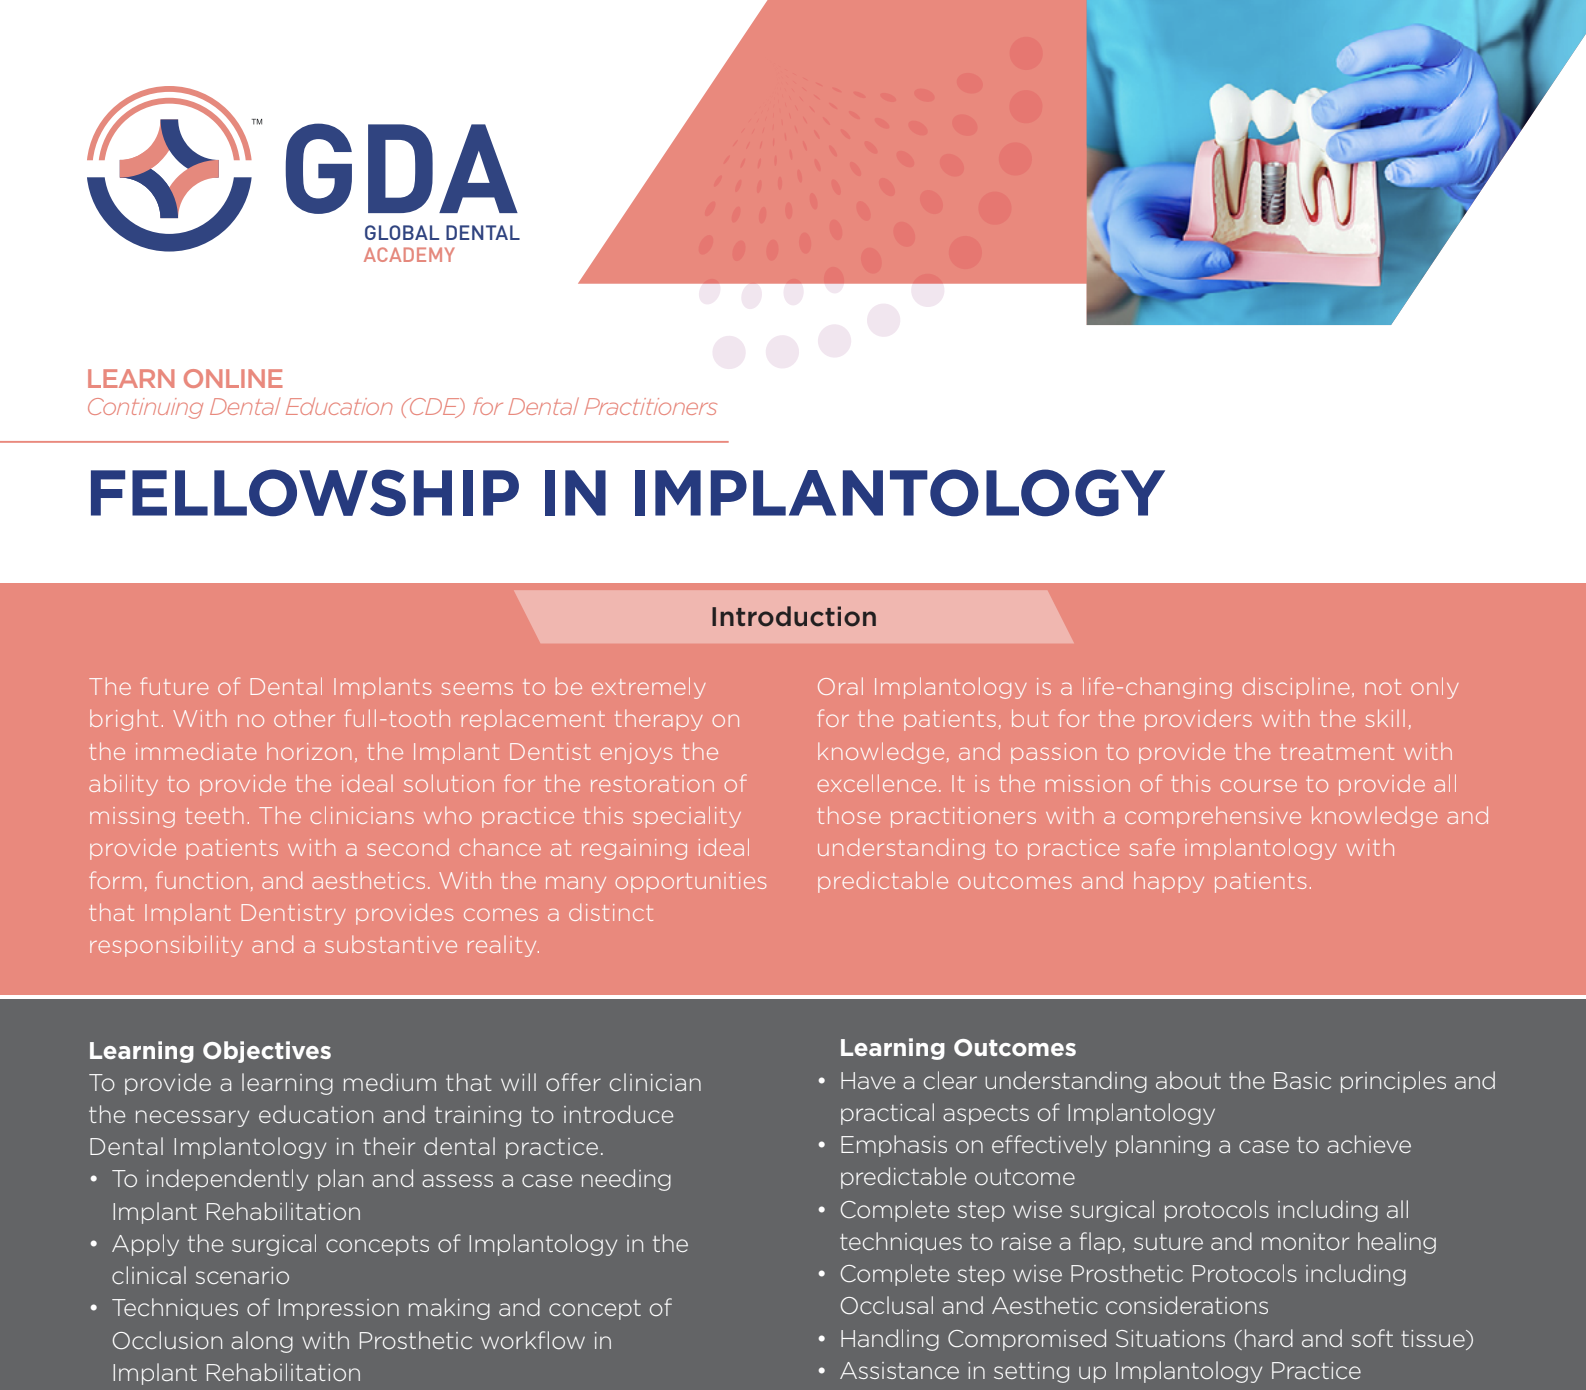 Fellowship in Implantology by Global Dental Academy (GDA)